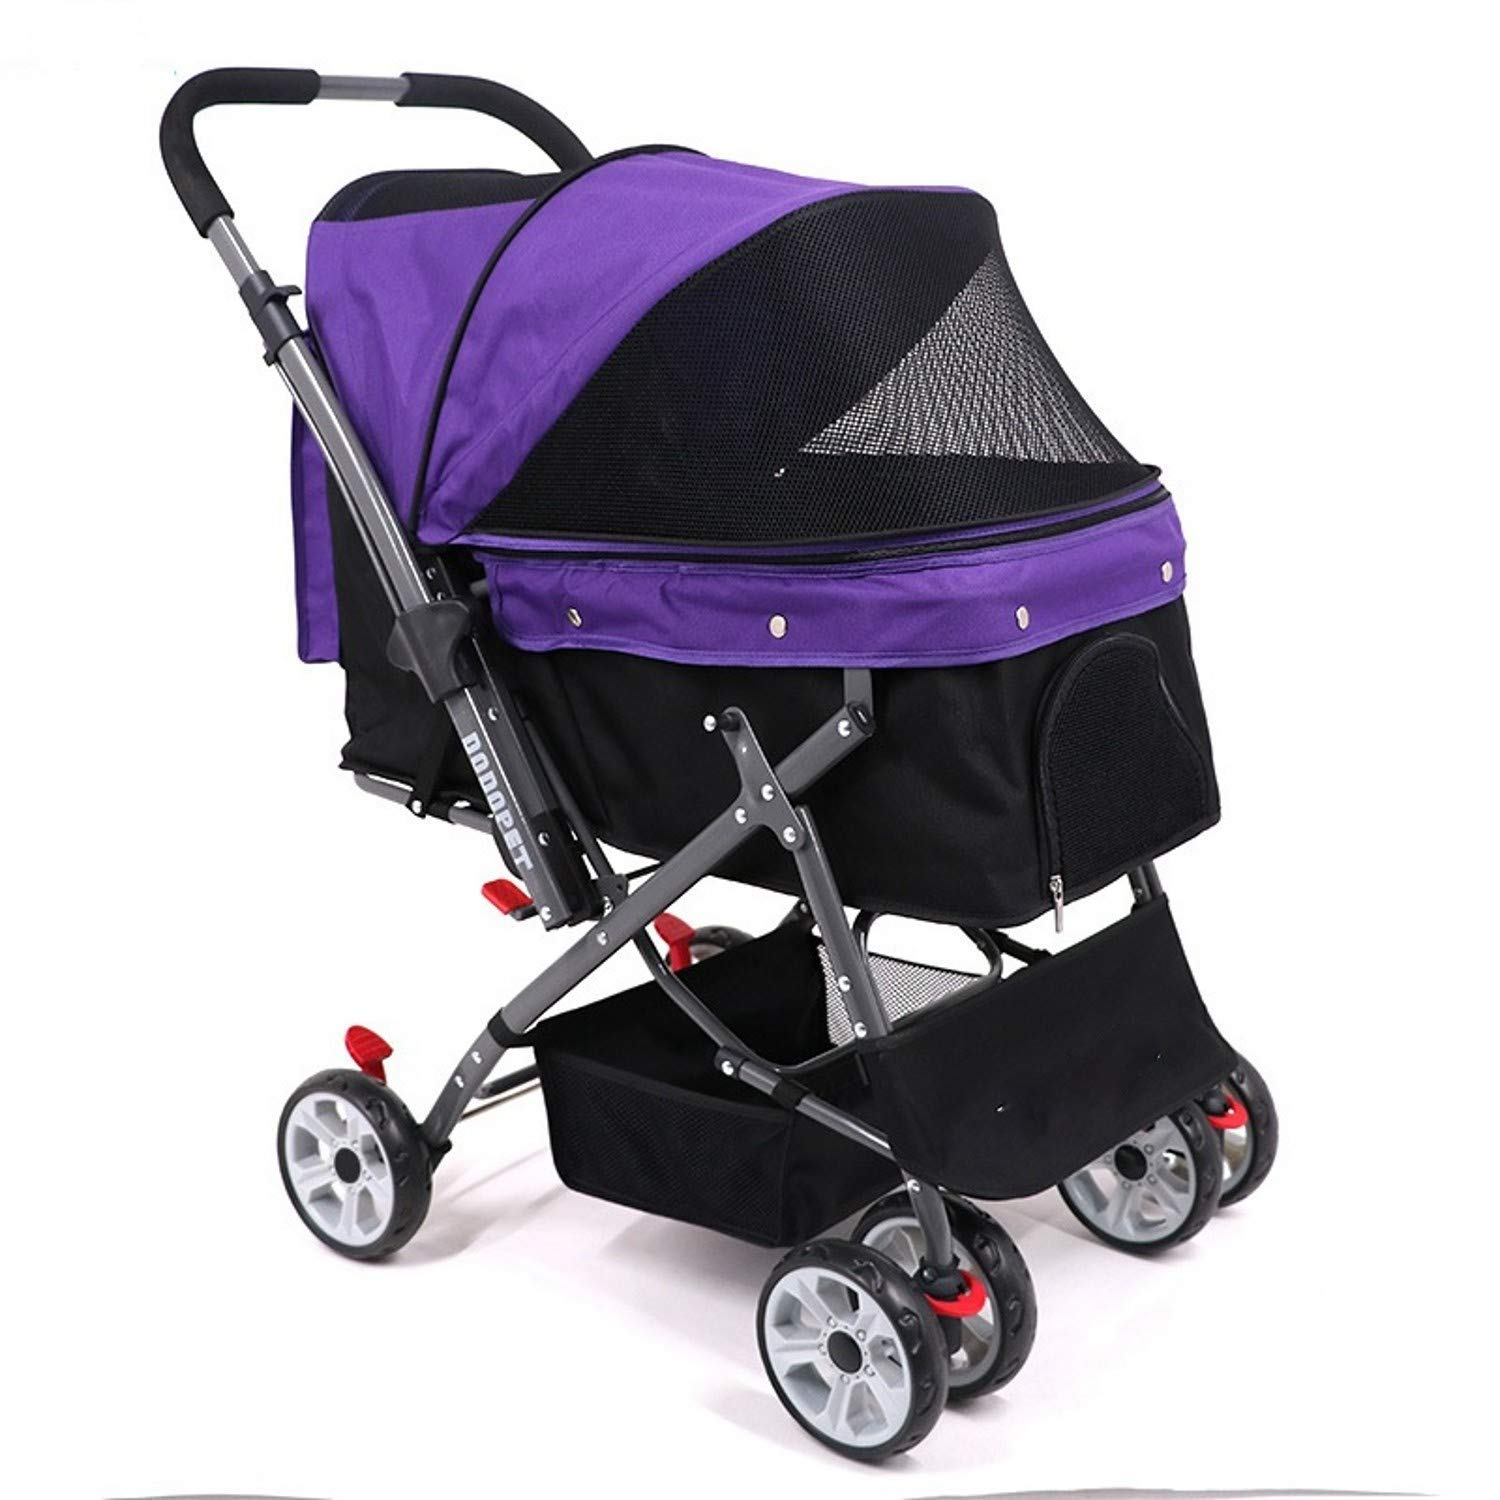 Purple MOIMK Pet Stroller Dog Pushchair, Light Weight Stainless Frame Pet Travel Carrier, Big Wheel With Safety Breaks